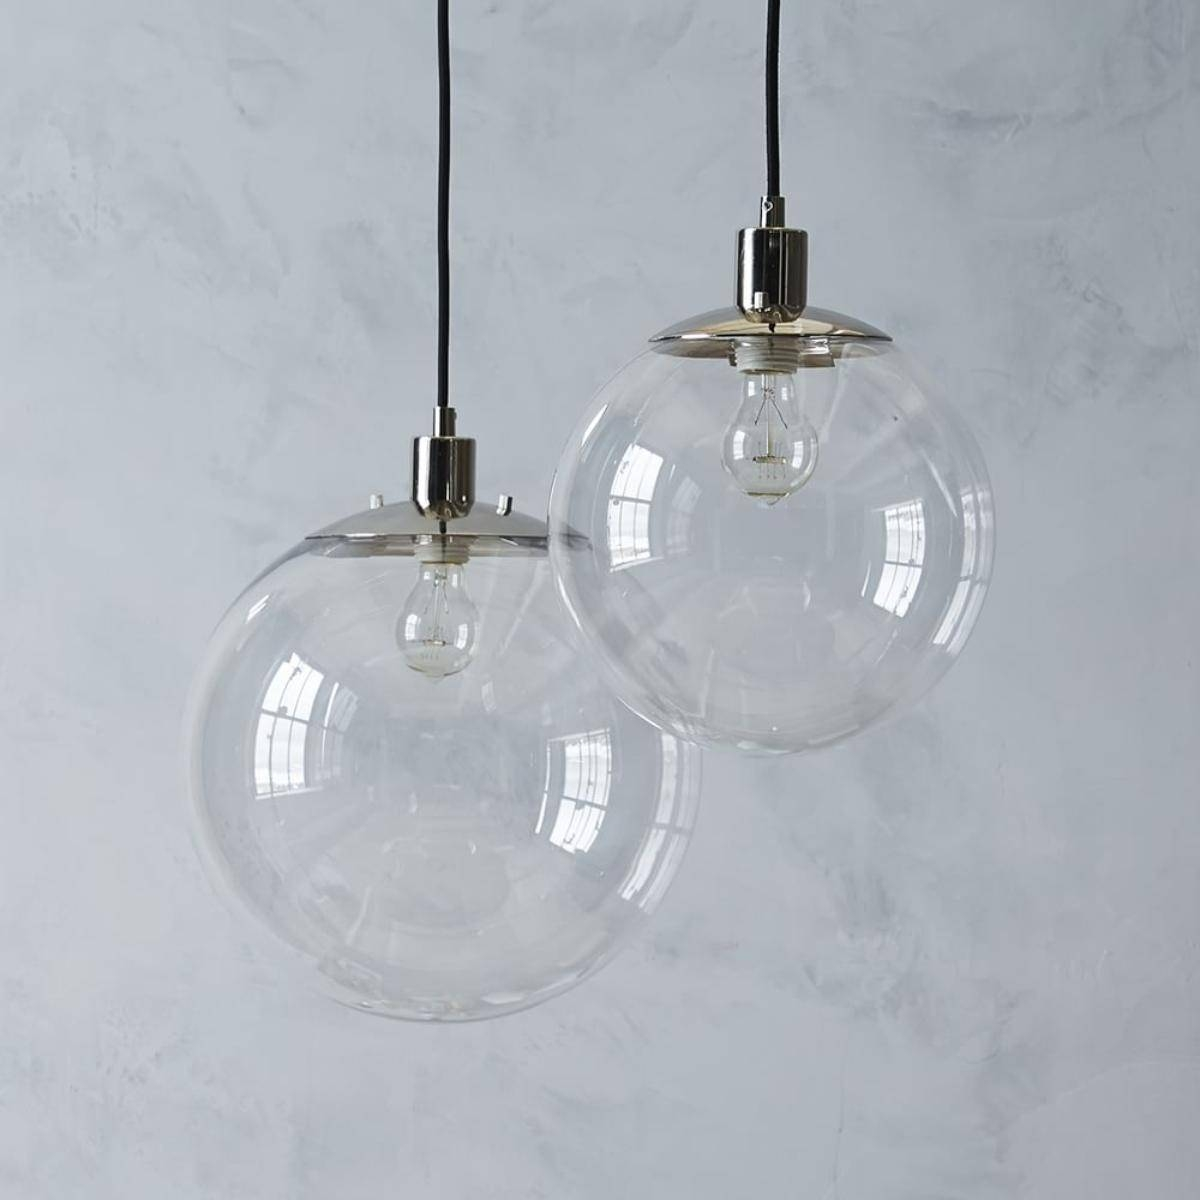 Decoration In Clear Glass Globe Pendant Light With Room Design Throughout Glass Ball Pendant Lights (View 15 of 15)